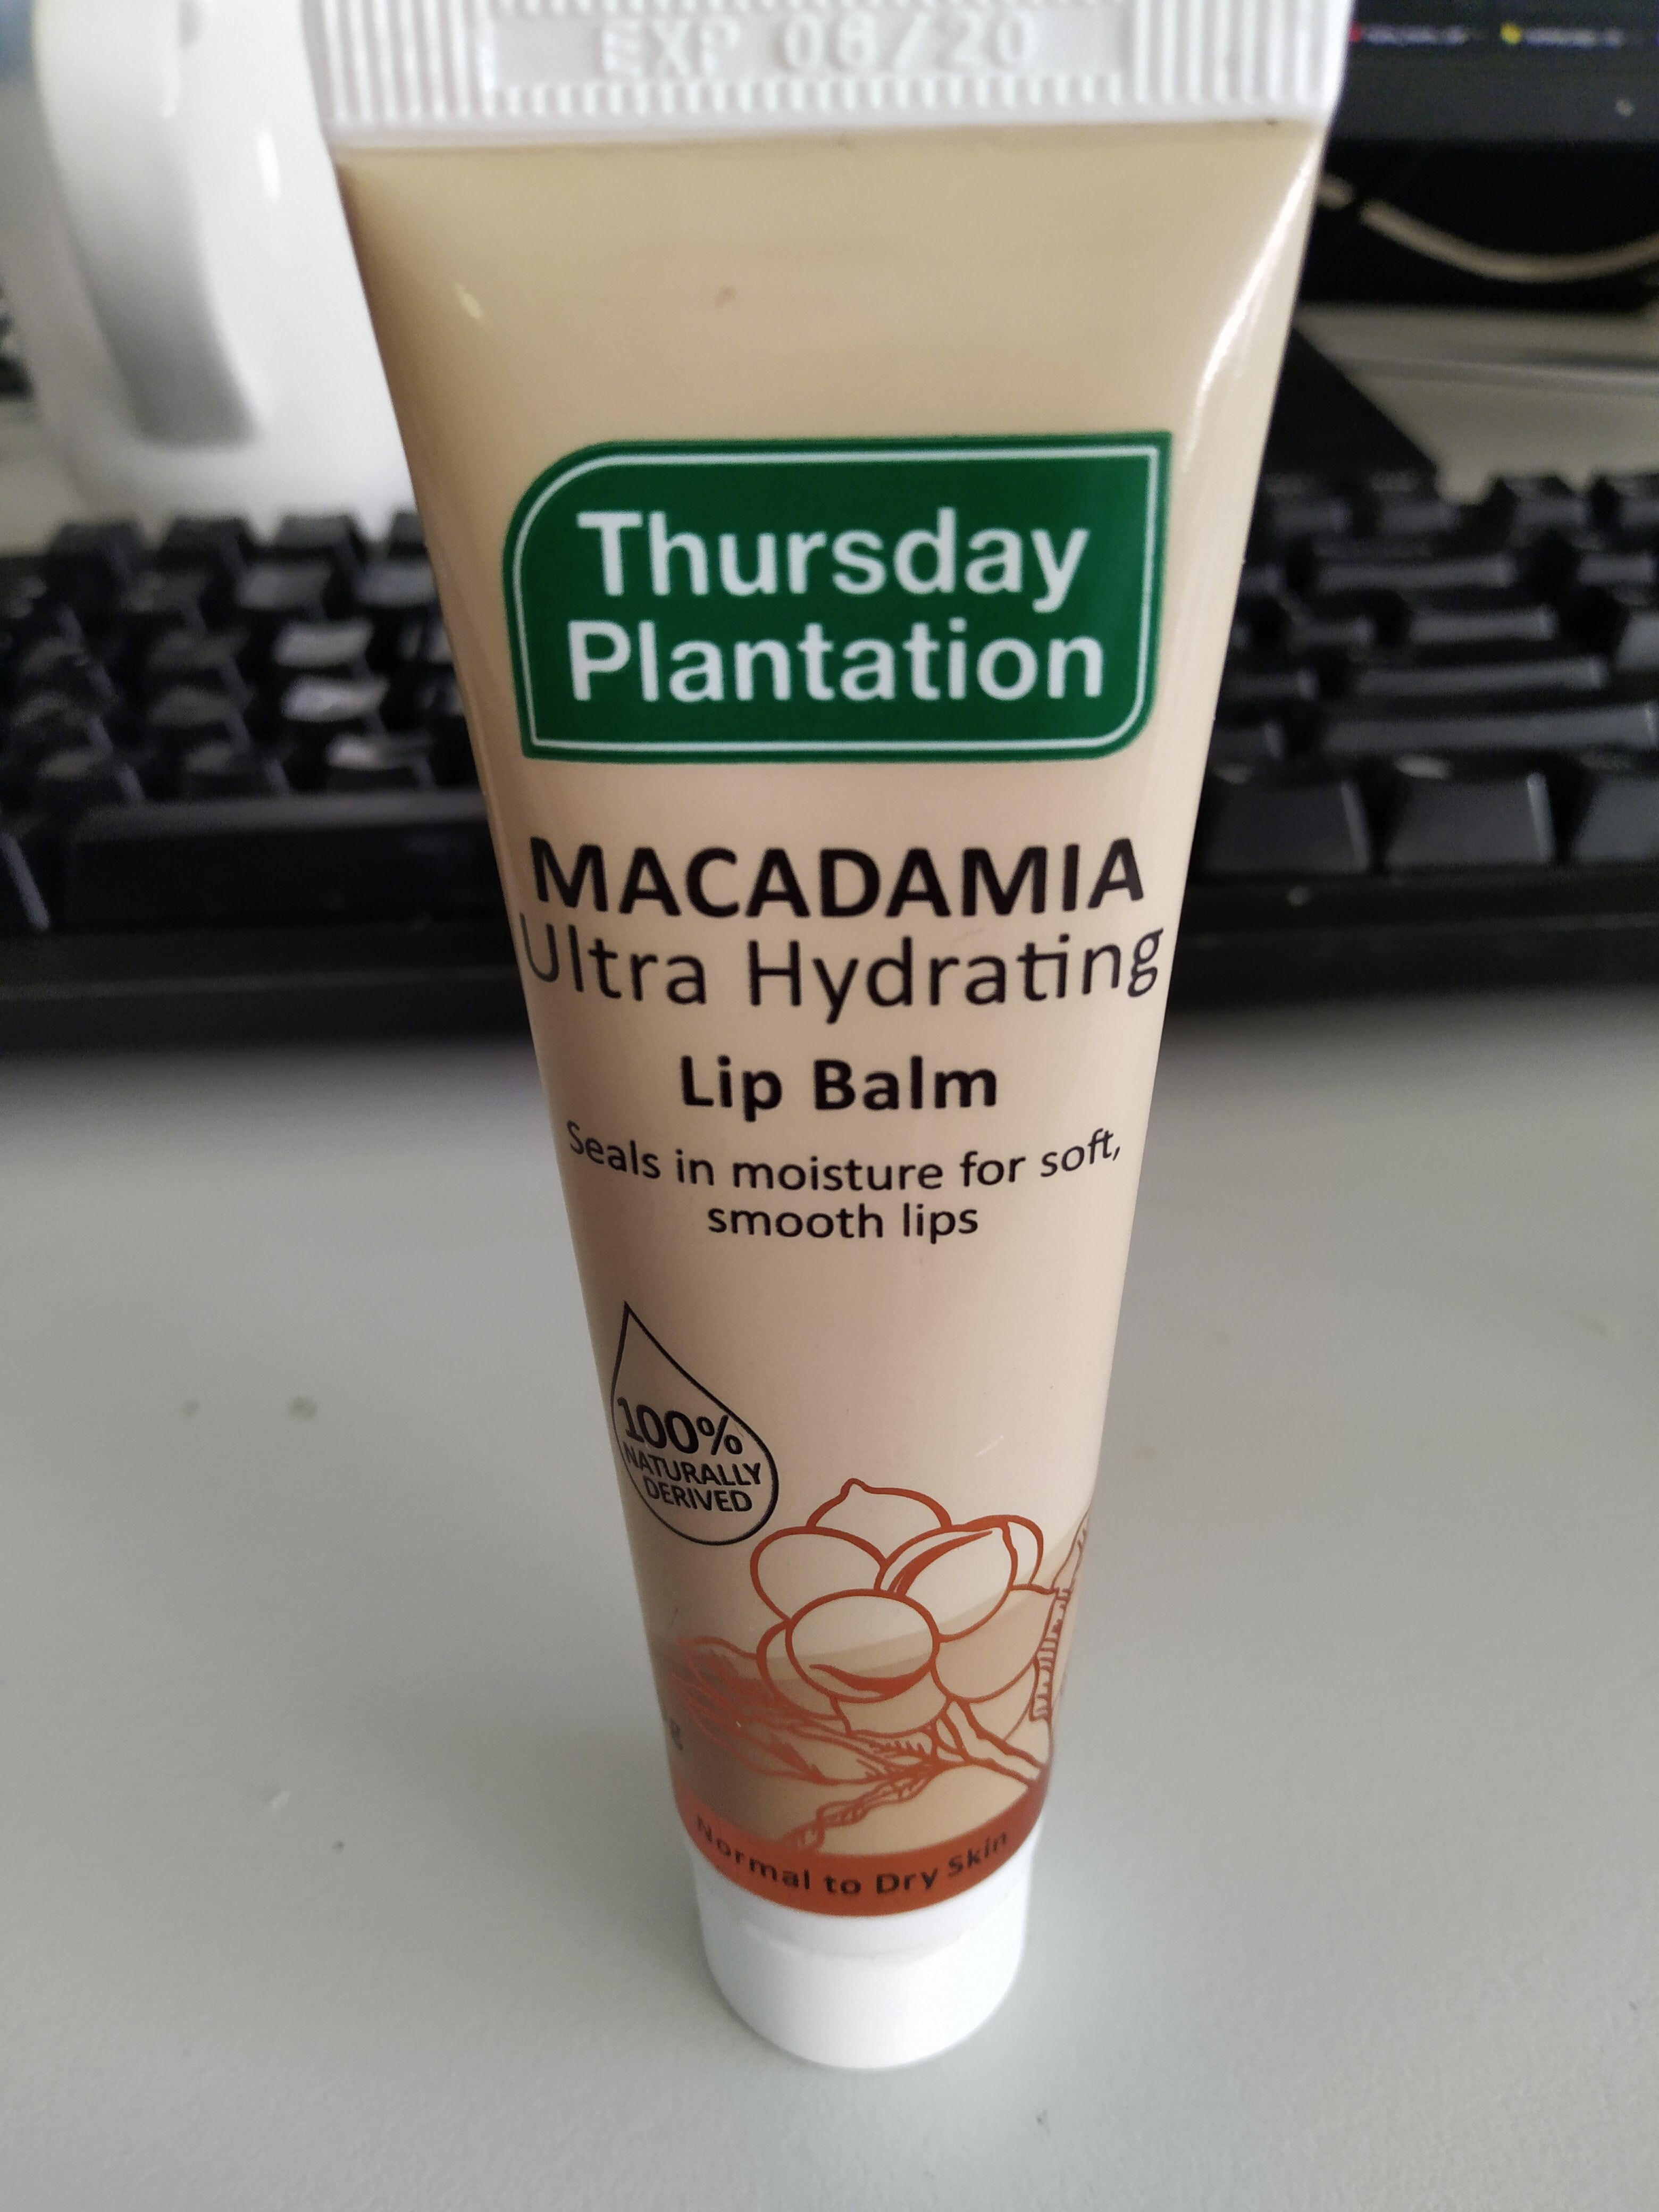 Macadamia Ultra Hydrating Lip Balm - Product - en